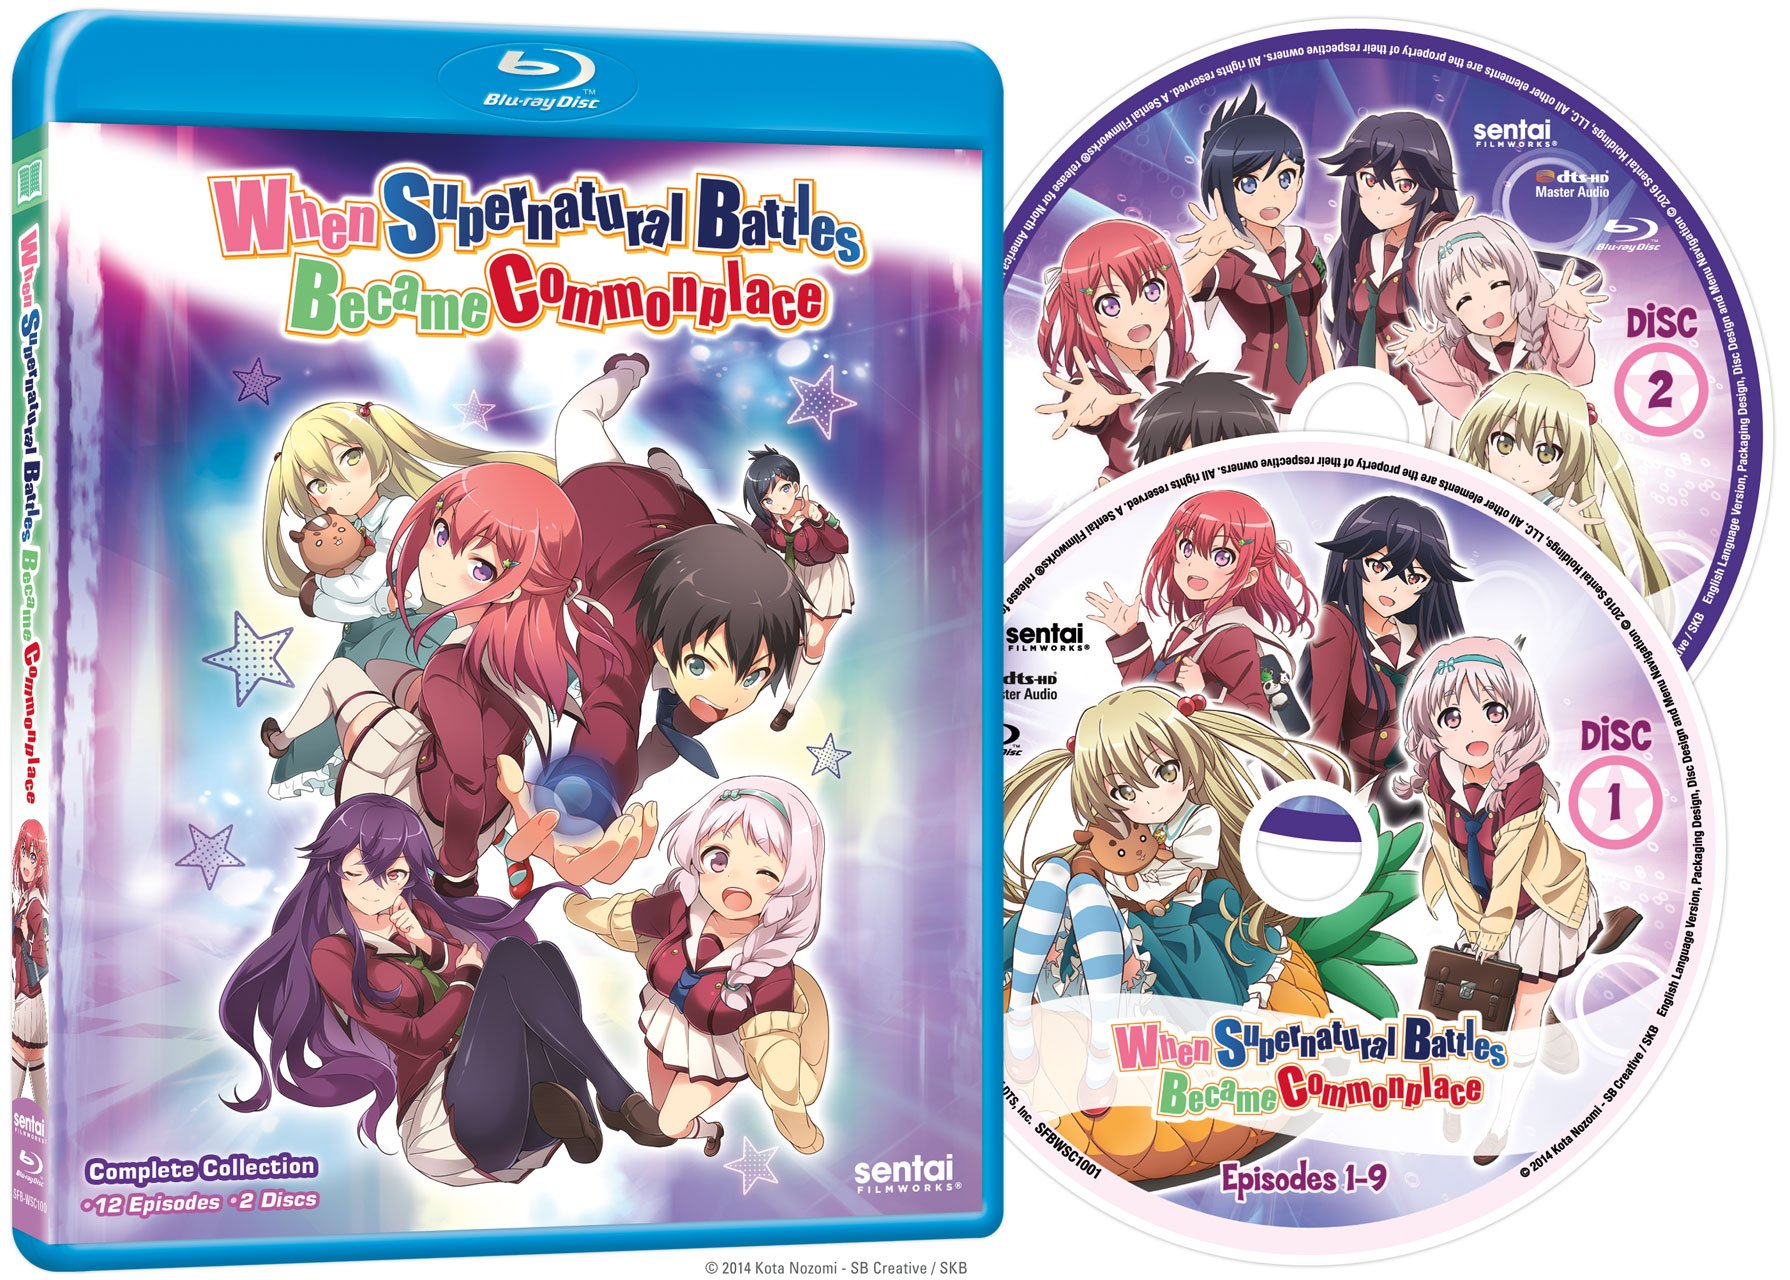 When Supernatural Battles Became Commonplace Complete Collection